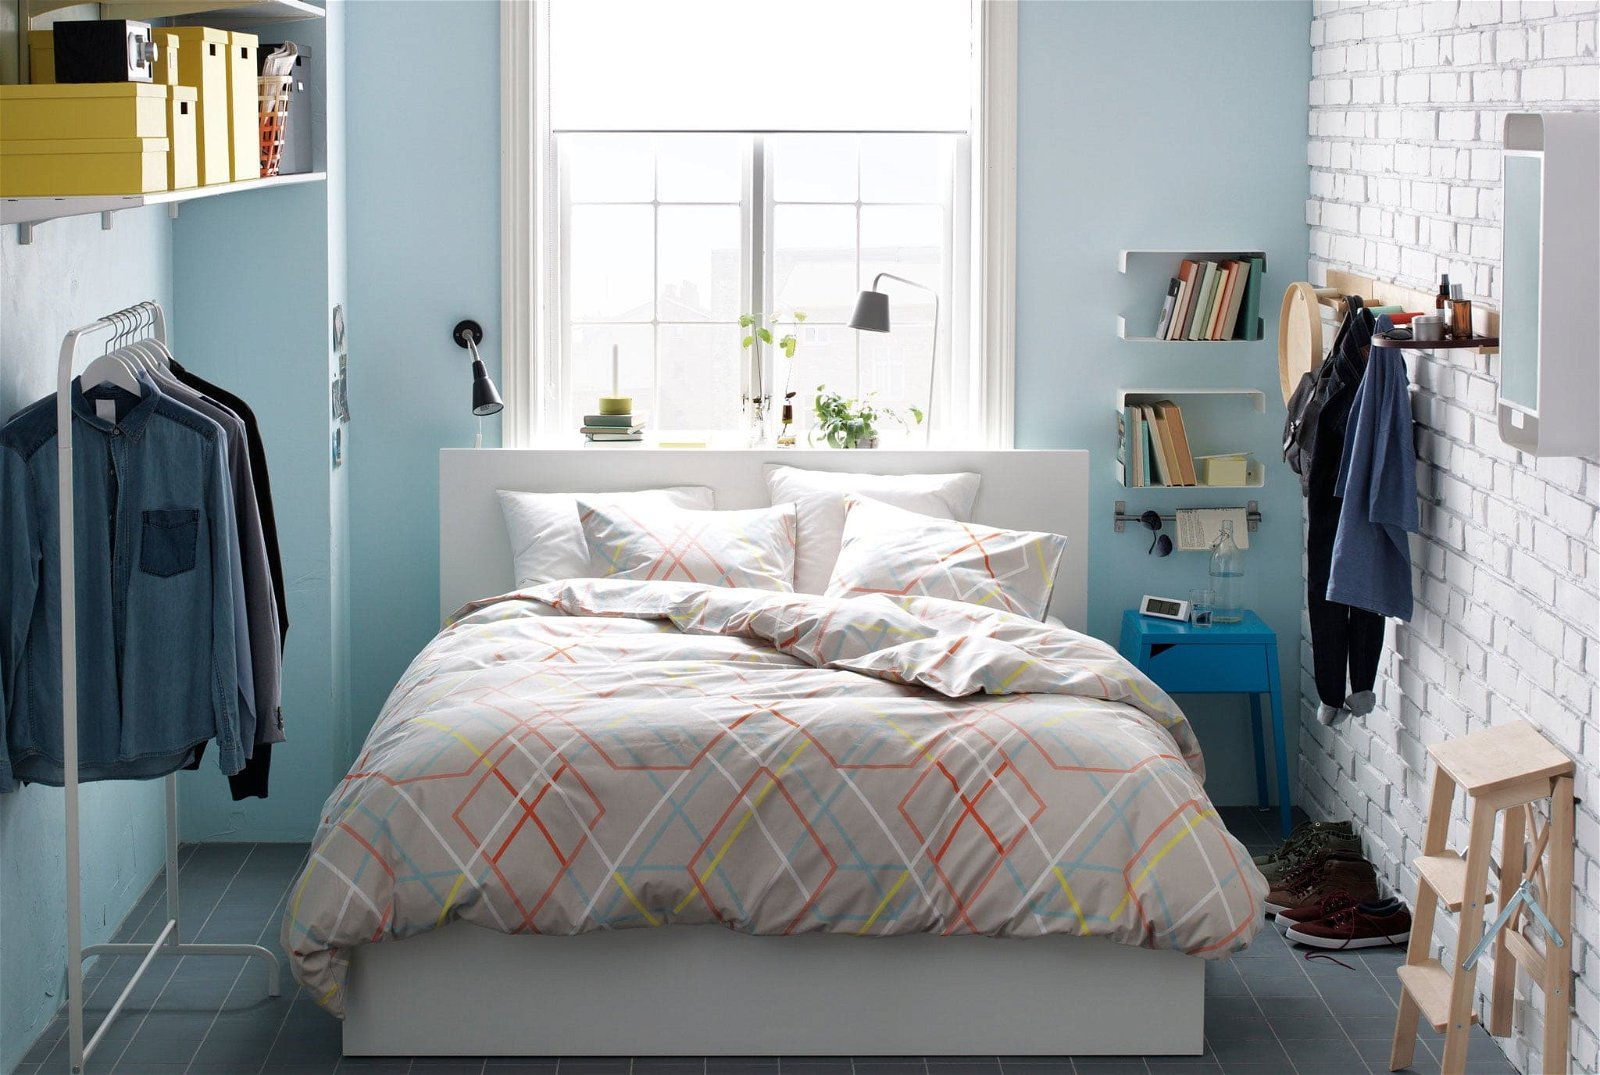 Simphome.com smart ideas for clothes storage in a small space with 10 storage ideas for small spaces bedroom most of the amazing and gorgeous